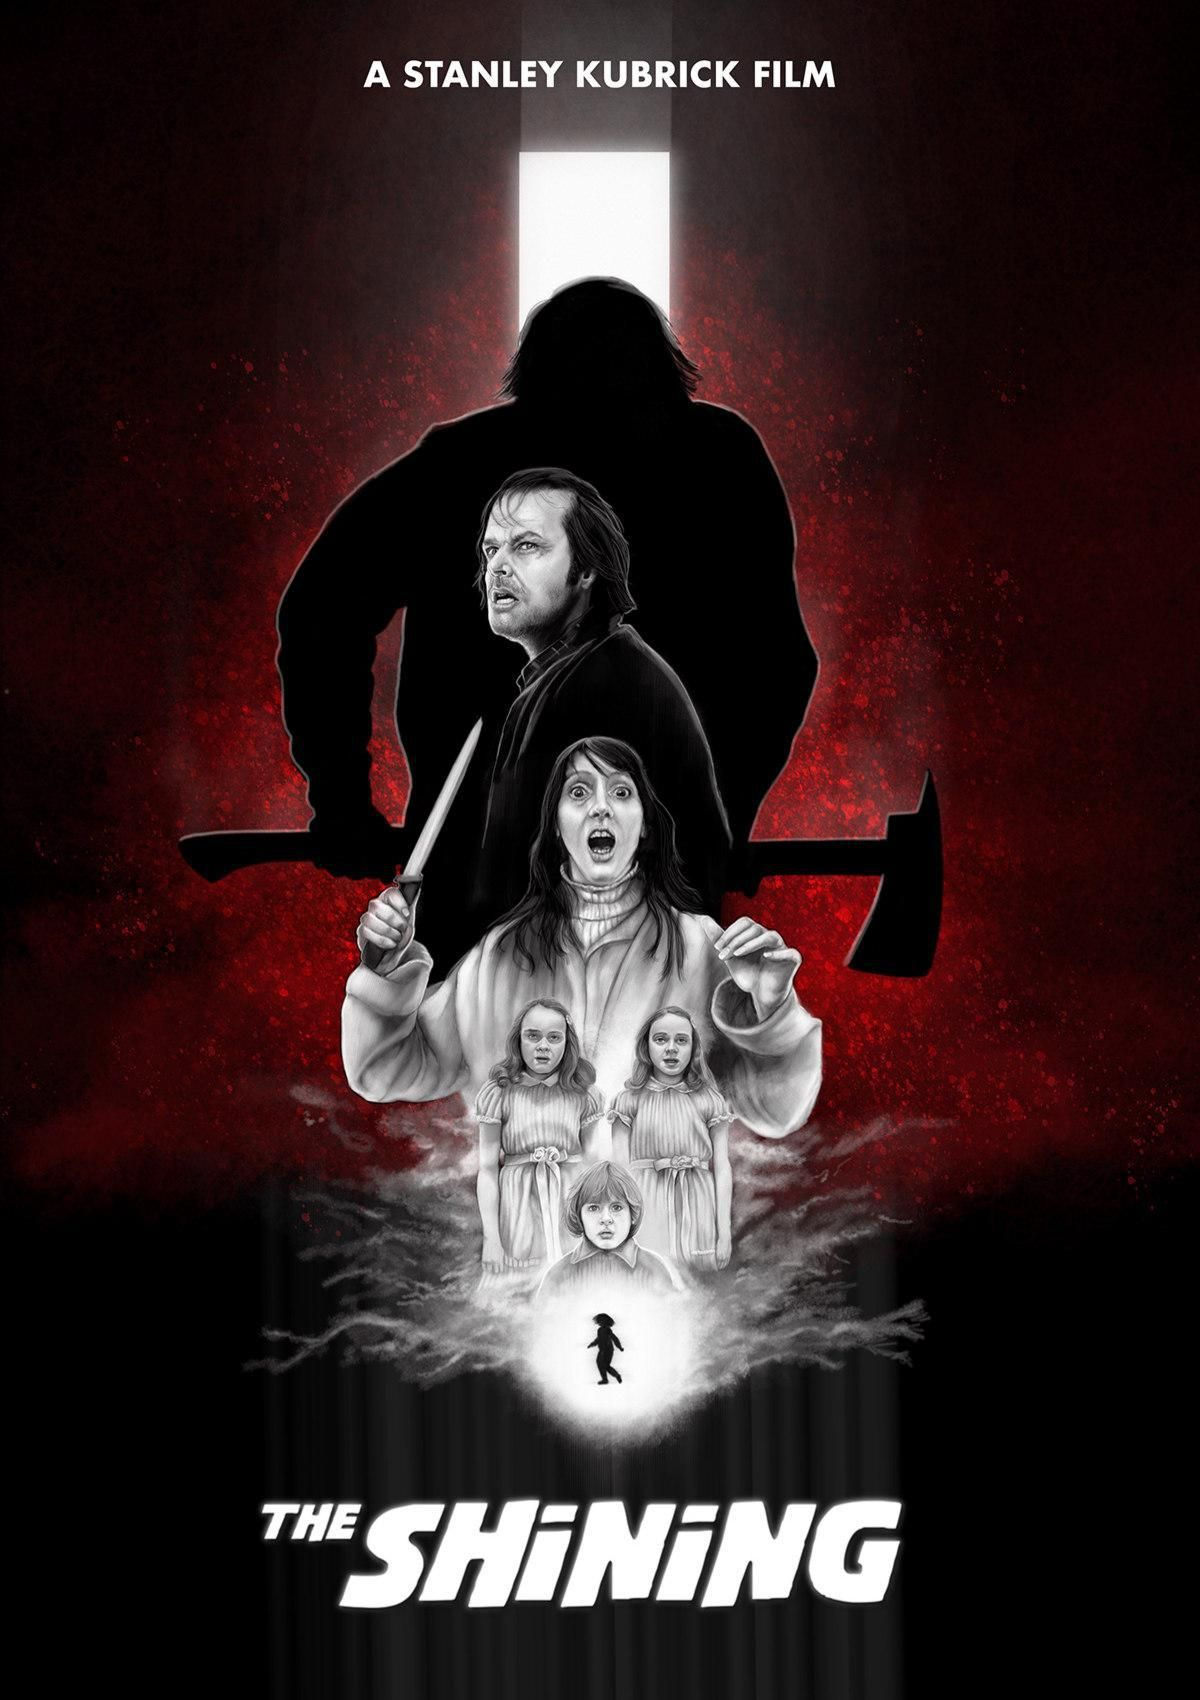 The Shining 1980 1200 X 1700 By Wes Dance Terror Movies The Shining Horror Movie Art